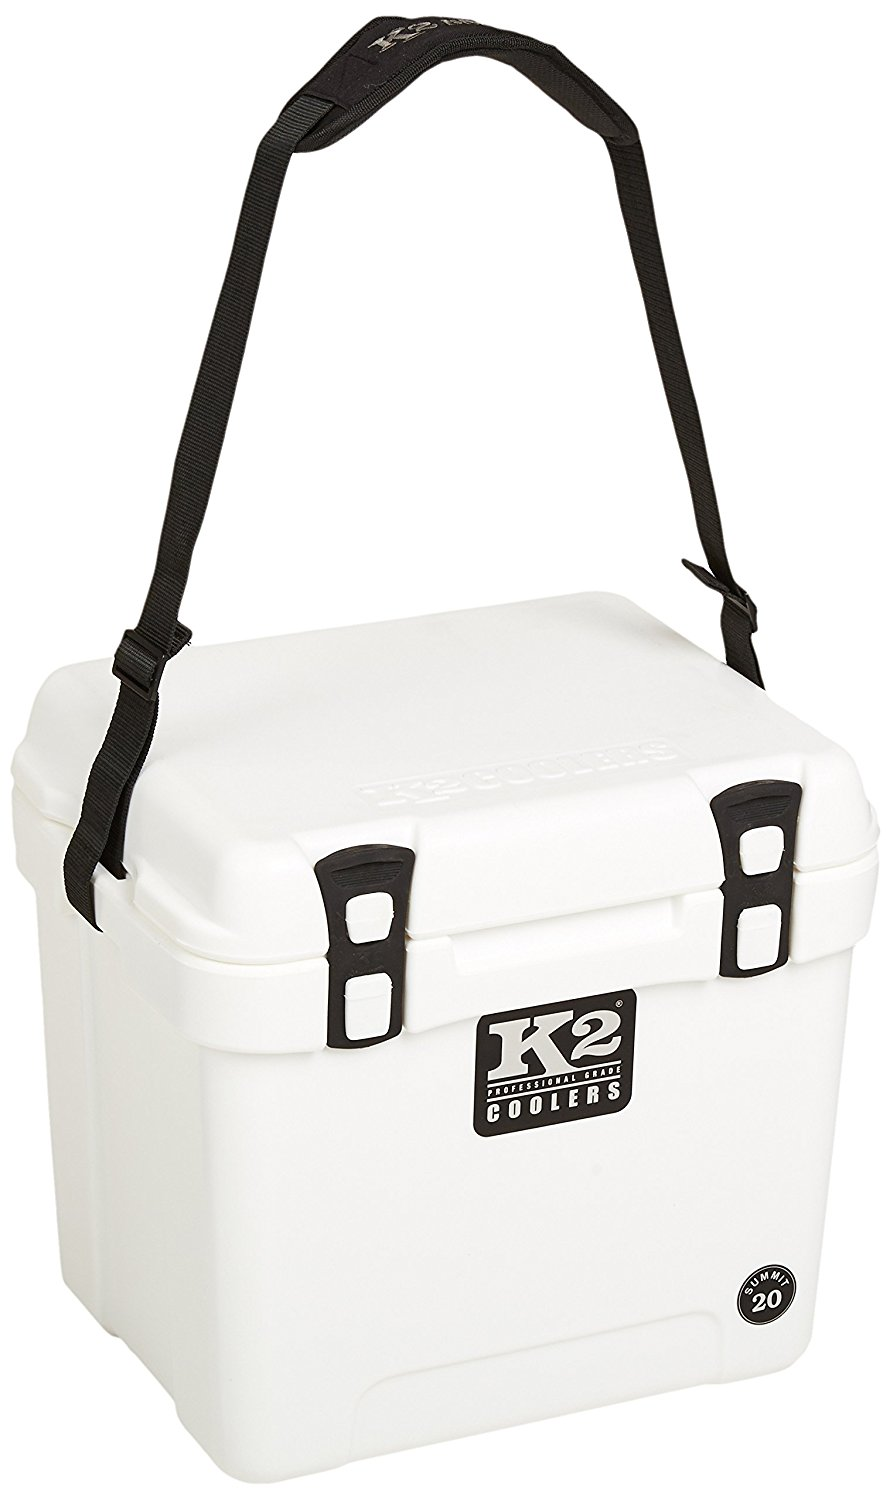 Best Coolers Like Yeti But Cheaper Review